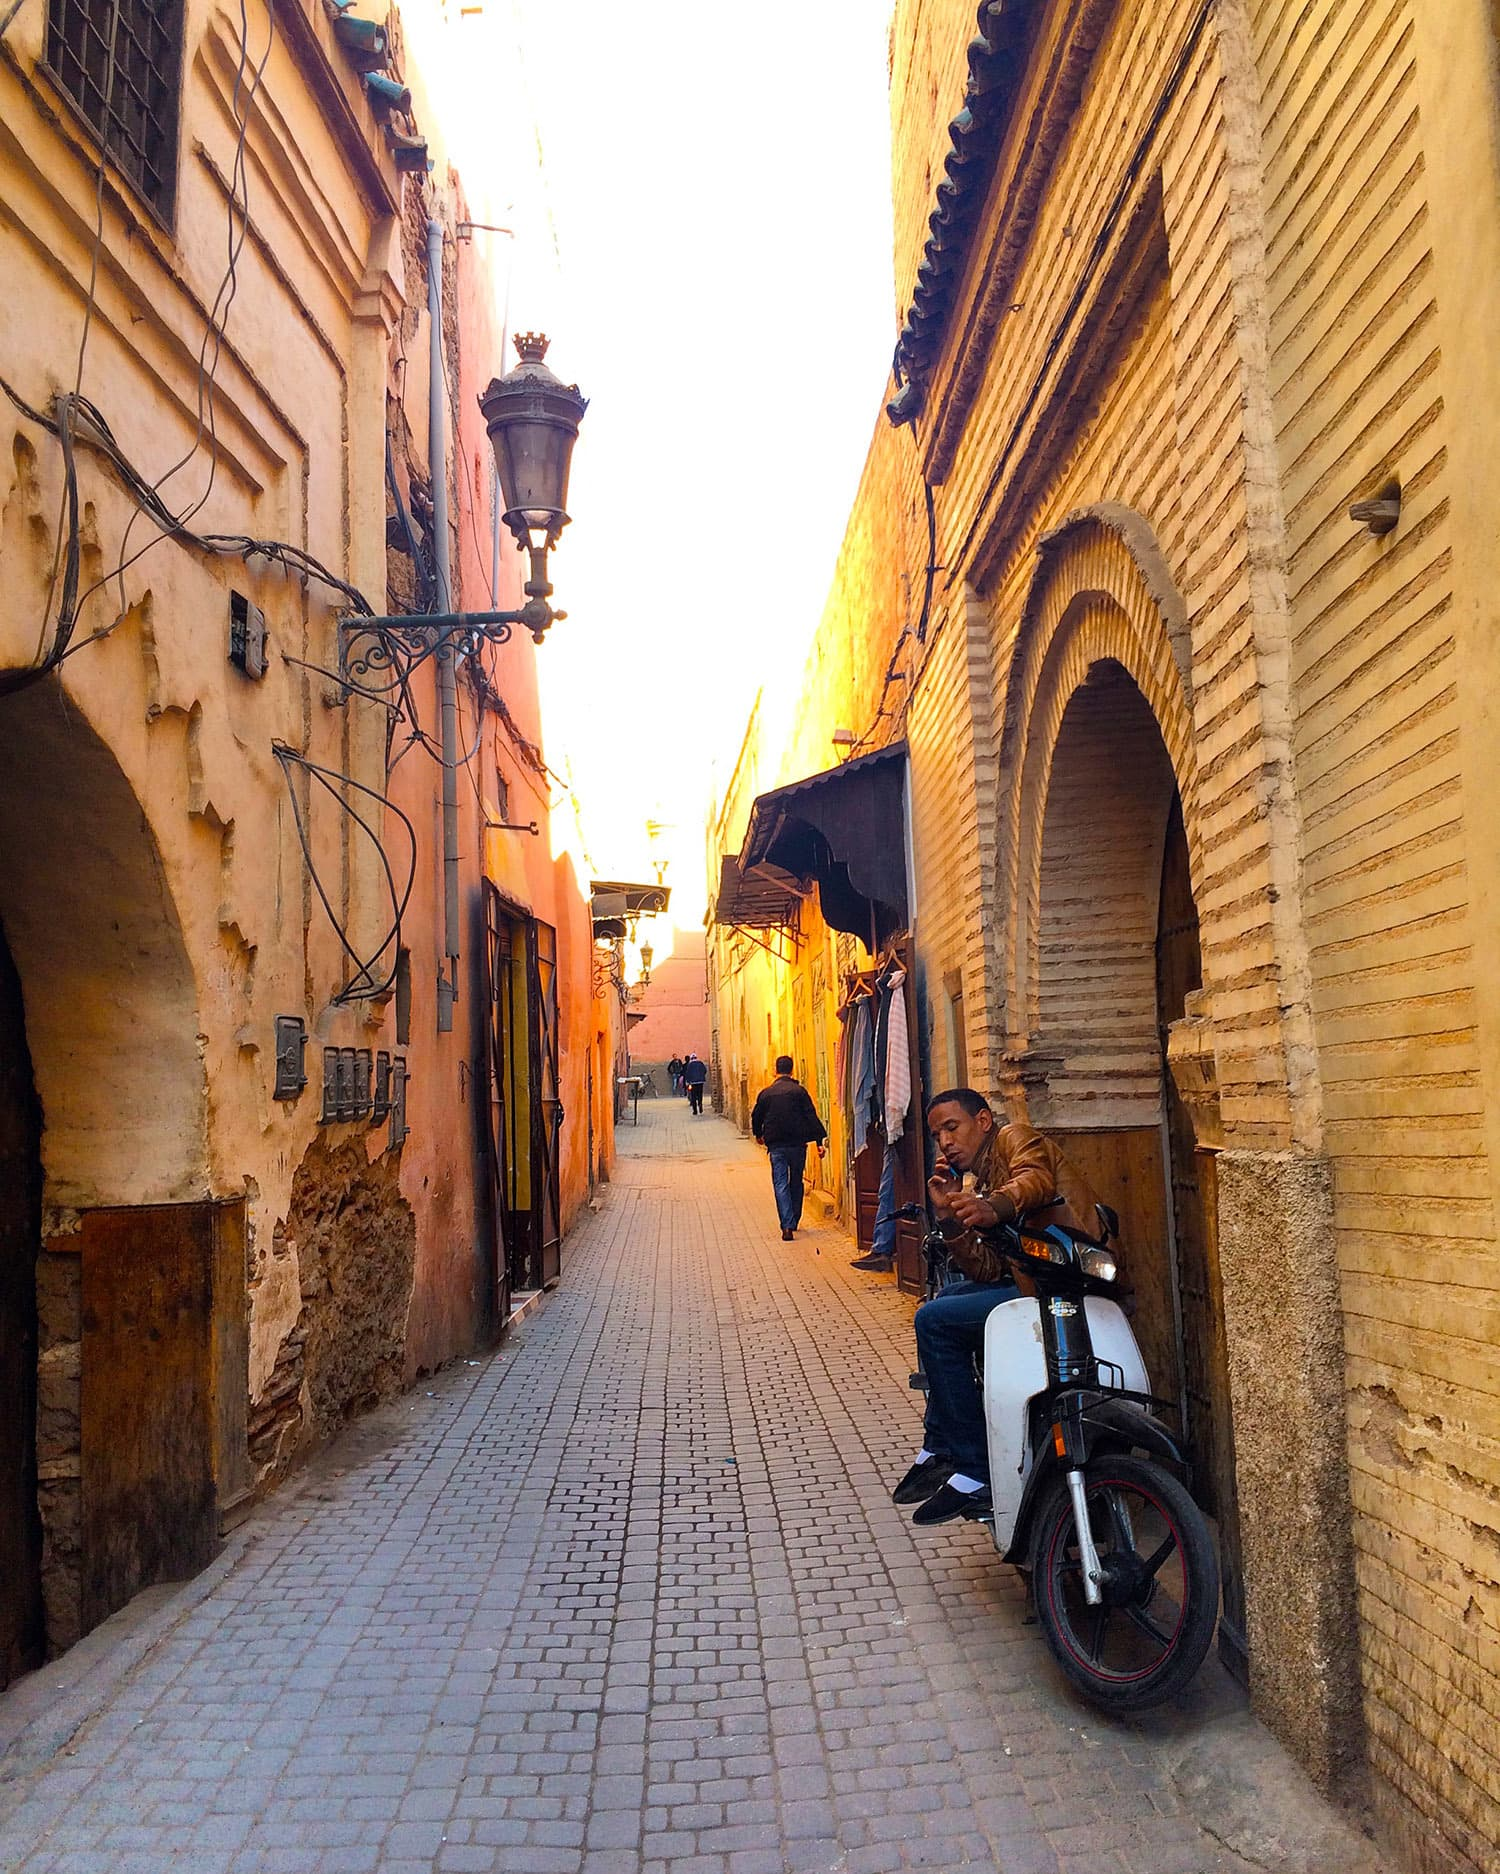 The narrow, maze-like alleys in the old city.